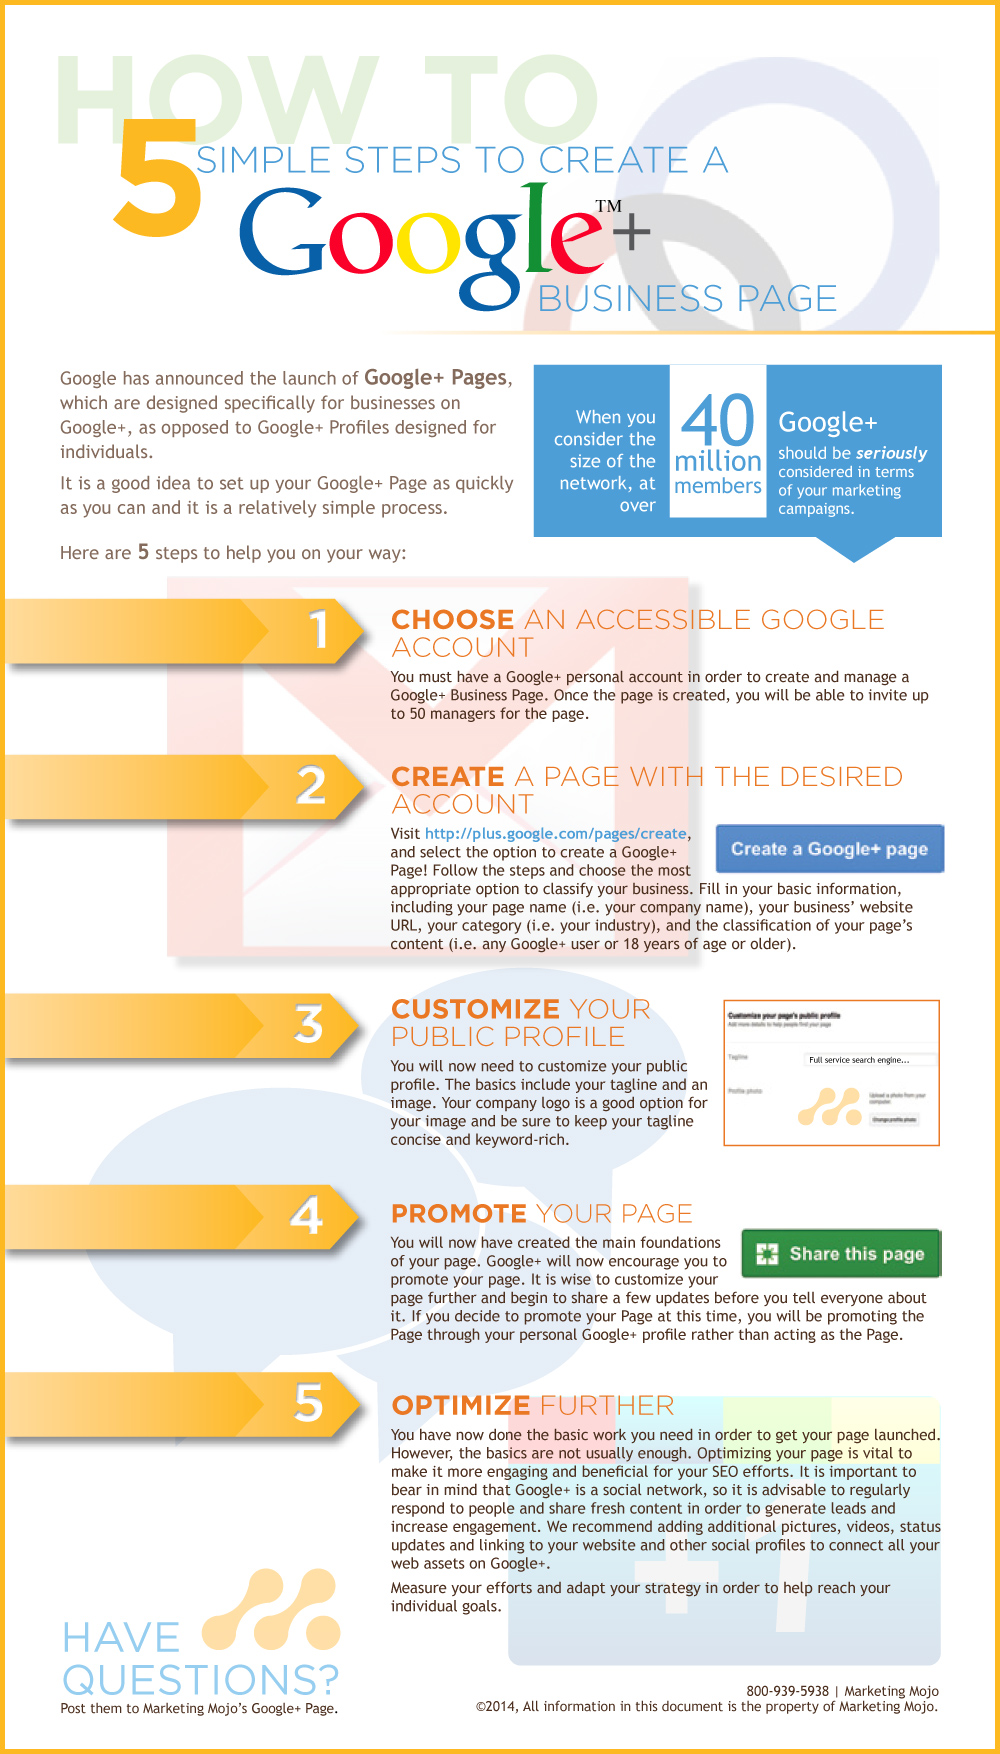 5 Simple Steps to Create a Google+ Business Page